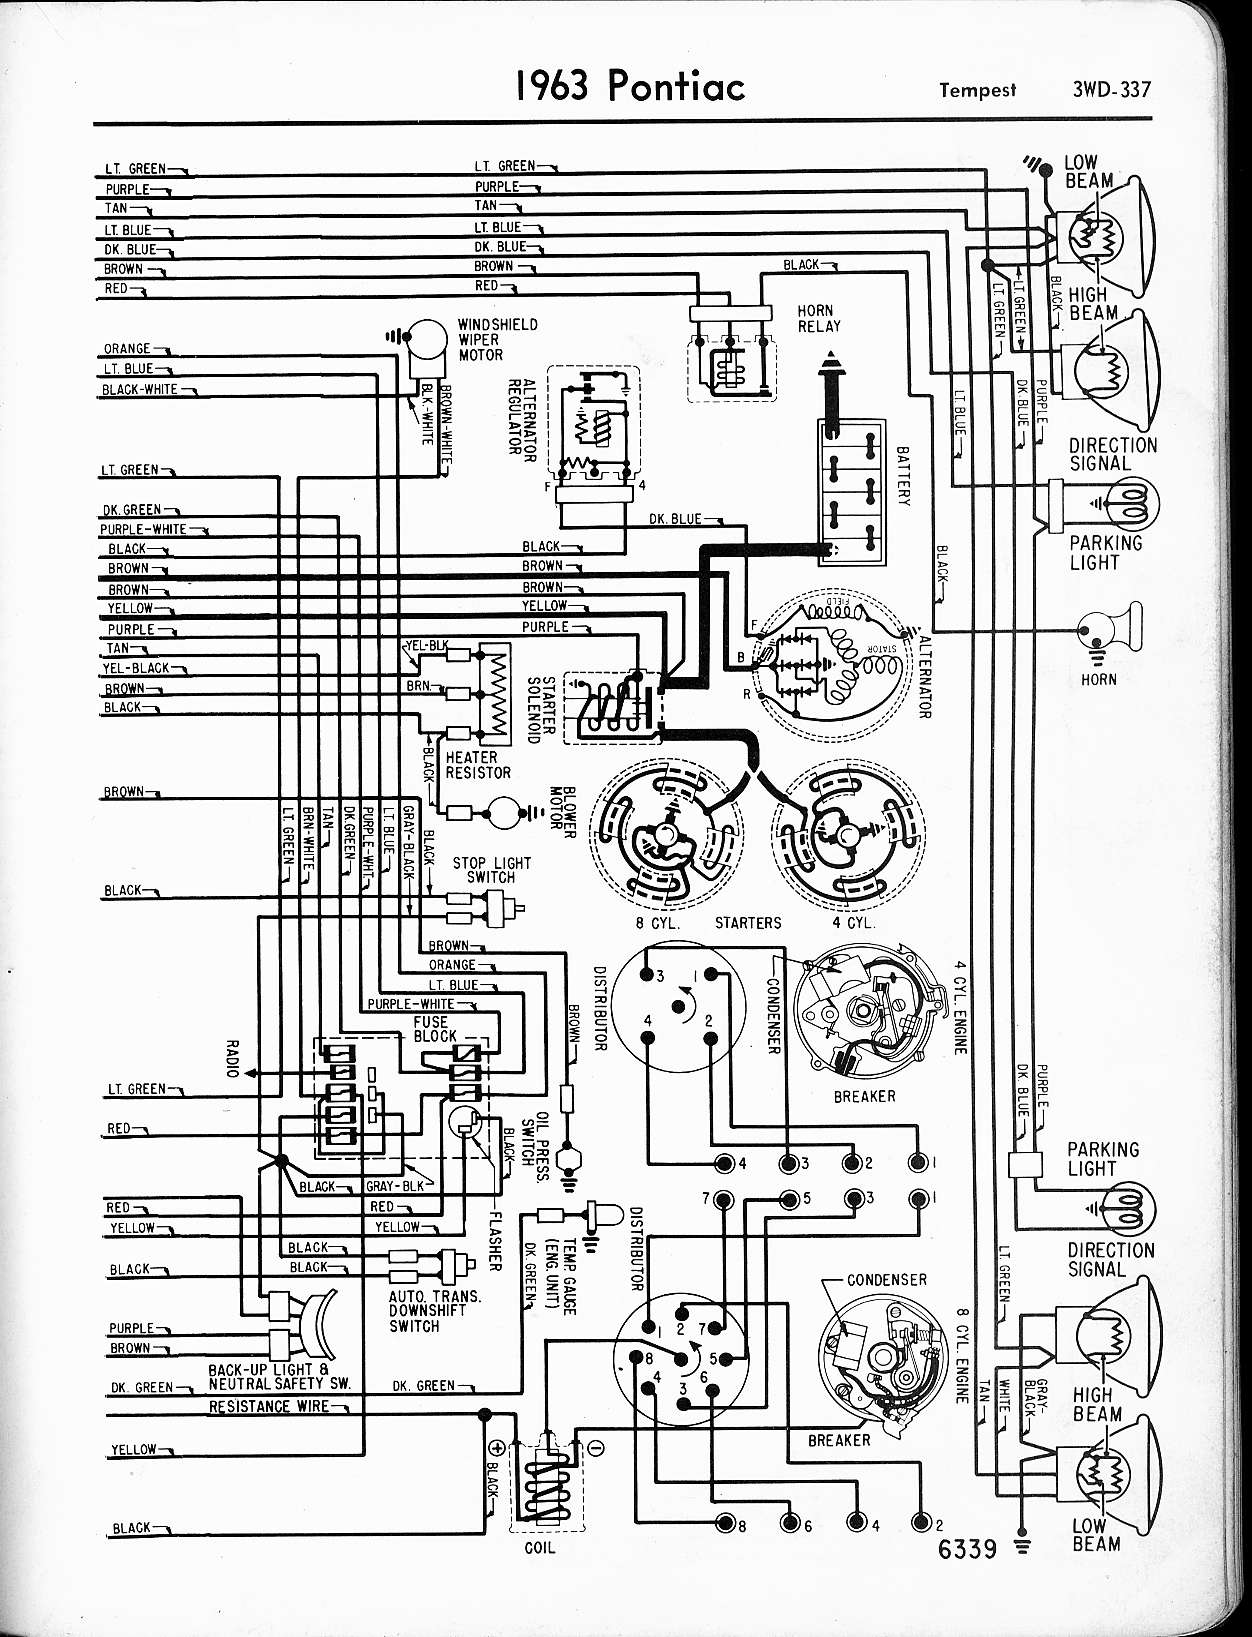 1970 ford thunderbird fuse box diagram 13 9 tierarztpraxis ruffy de 2001 Ford F-150 Fuse Panel 1970 gto fuse box 19 6 tierarztpraxis ruffy de u2022 rh 19 6 tierarztpraxis ruffy de turn signal fuse location 1996 thunderbird under hood fuse block